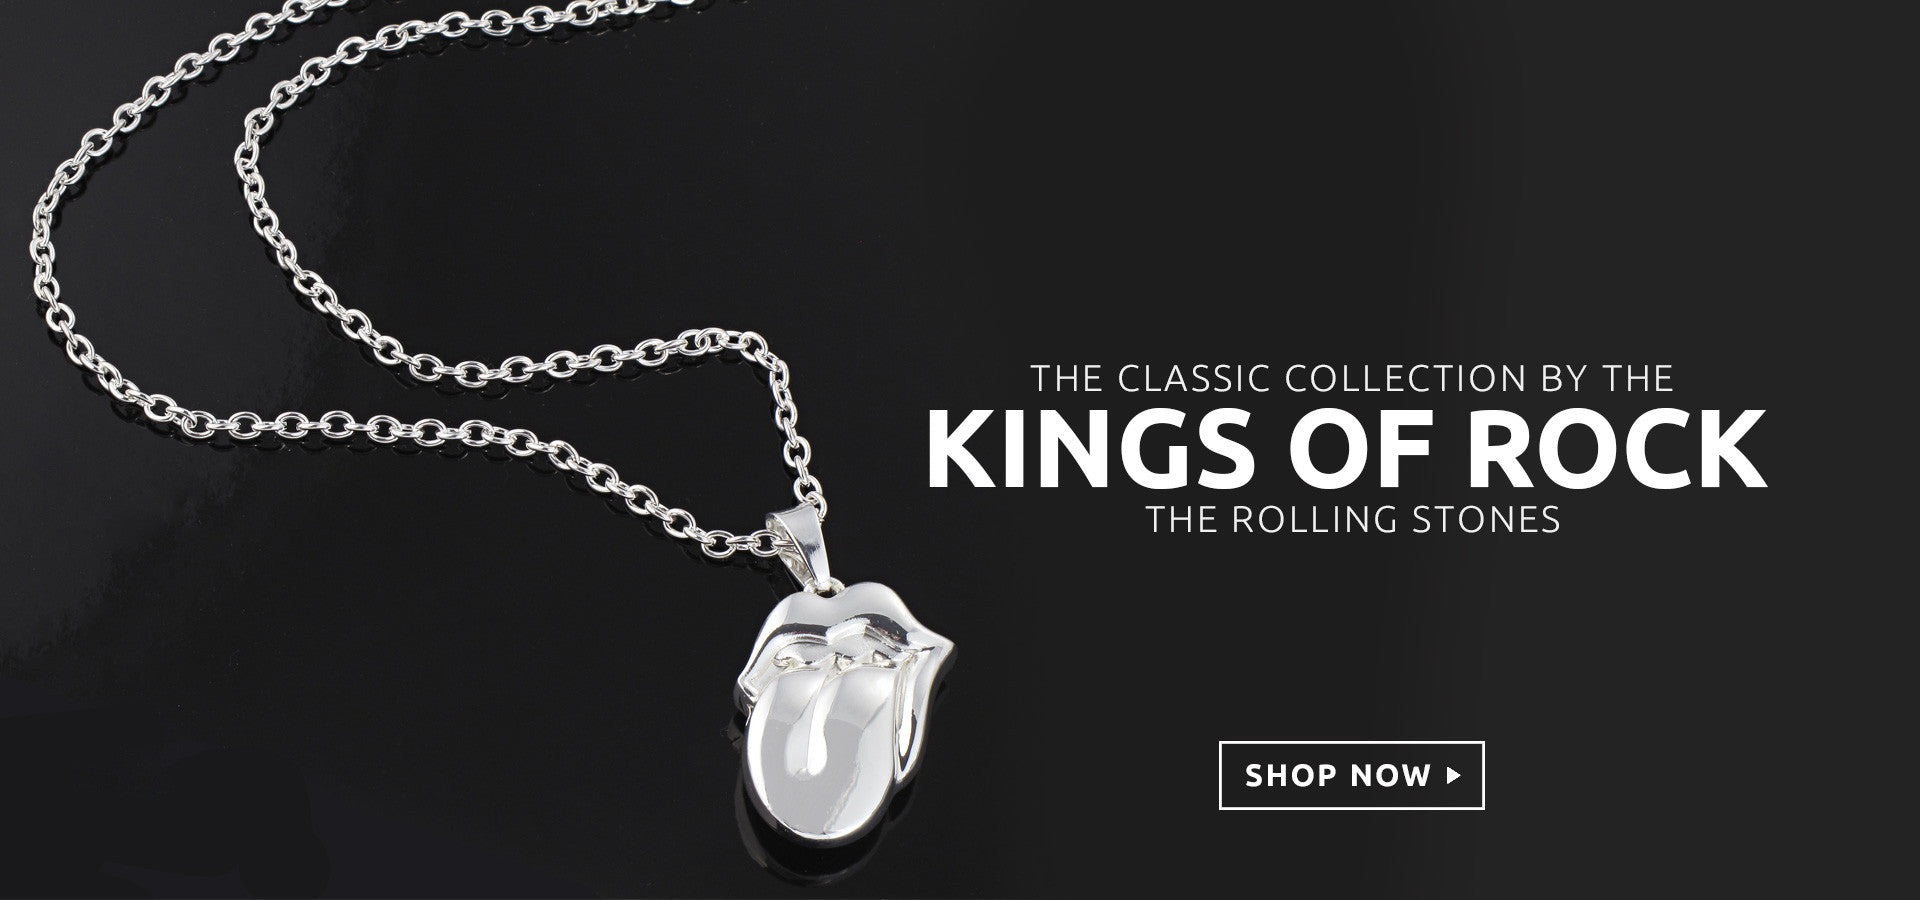 The Rolling Stones tongue necklace merch